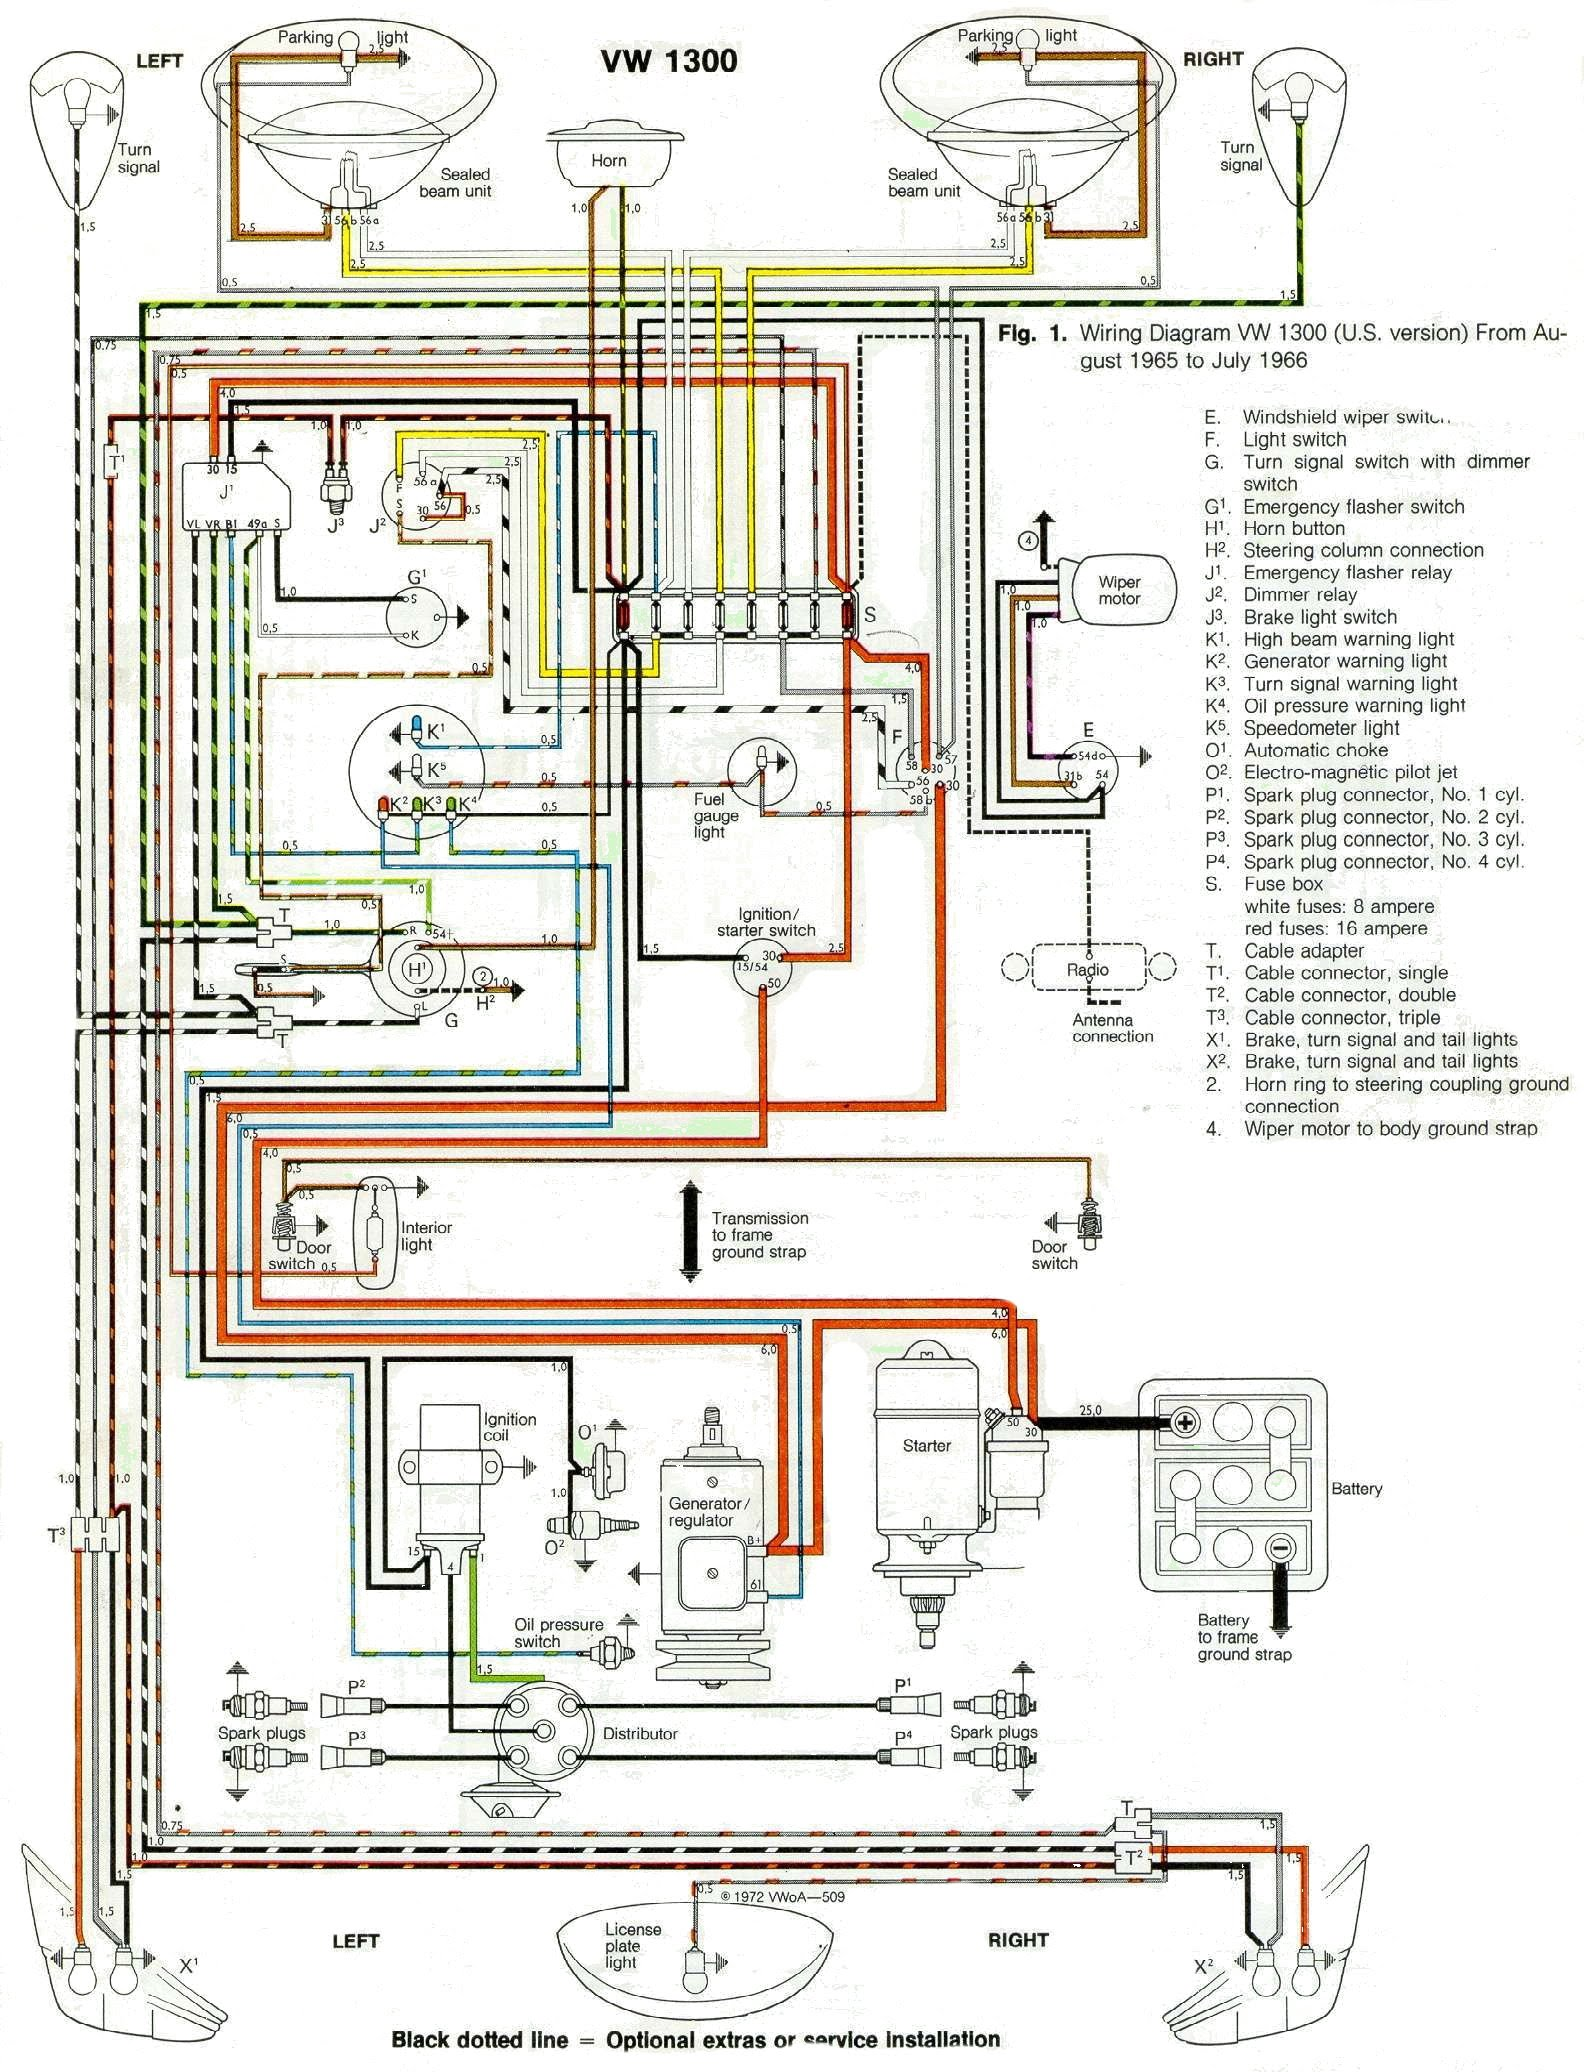 1965 volkswagen 1300 city car wiring diagram diagrams 19191168 vw golf wiring diagram electrical wiring vw citi golf wiring diagram at honlapkeszites.co